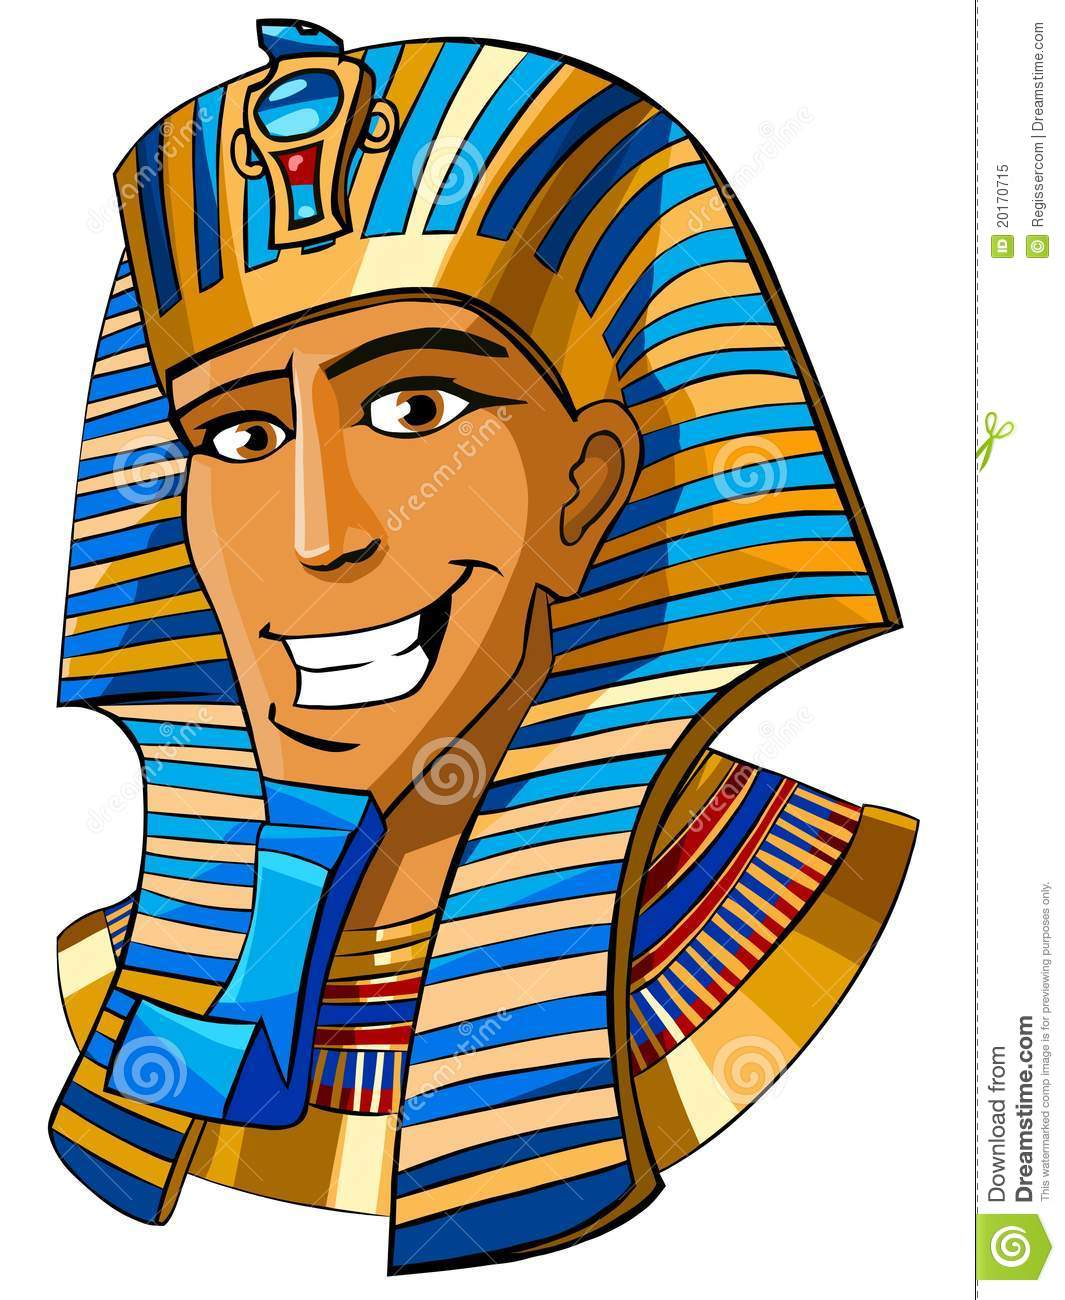 egyptian pharaoh stock illustration image of education free animated smiley face clip art Silly Smiley Face Clip Art